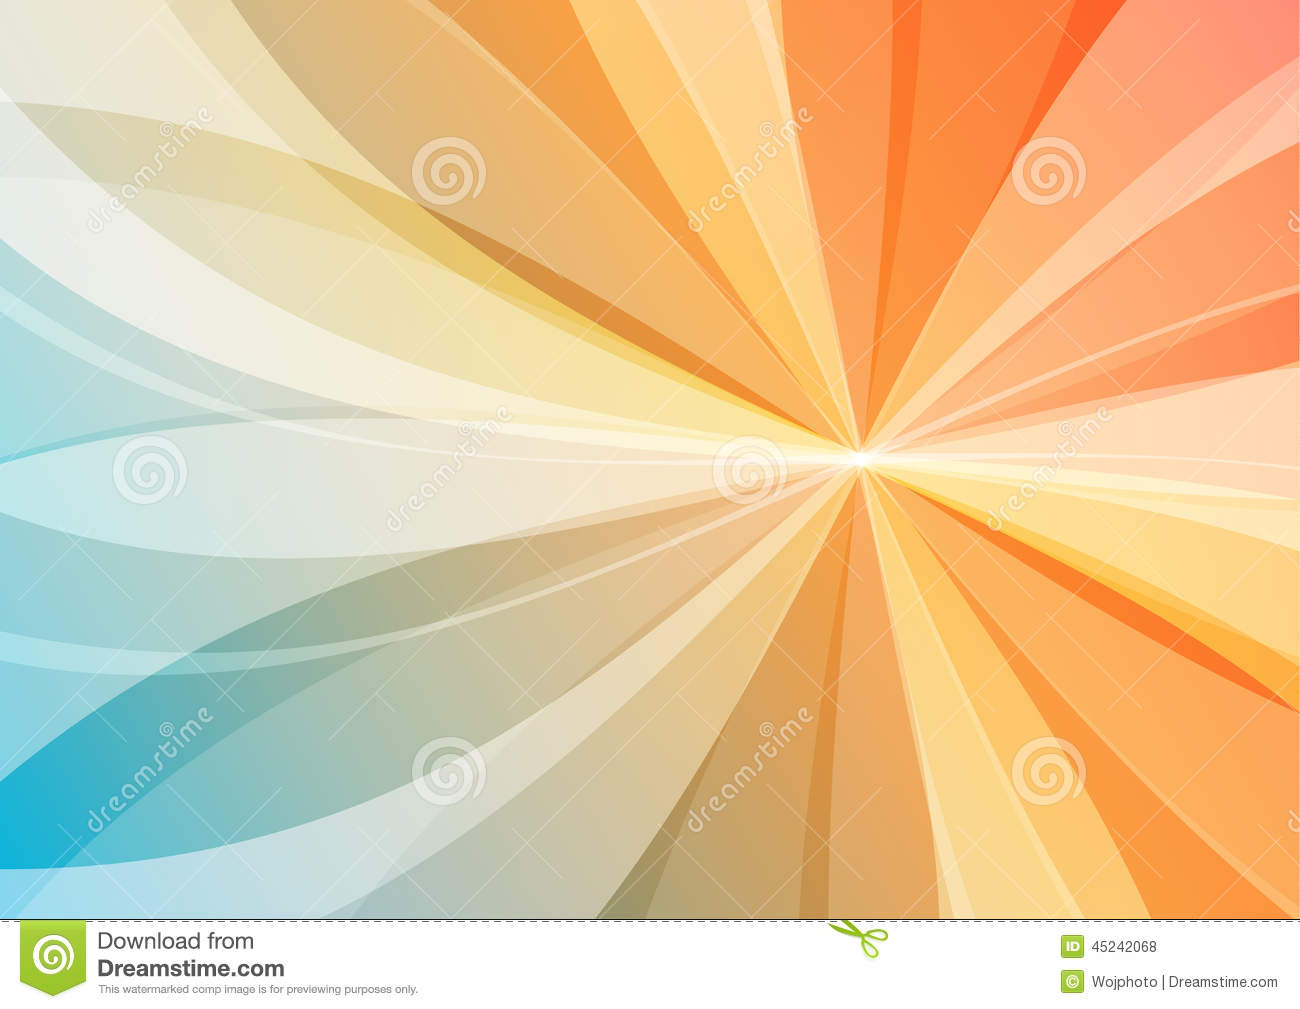 Abstract orange and blue background stock illustration abstract orange and blue background altavistaventures Images